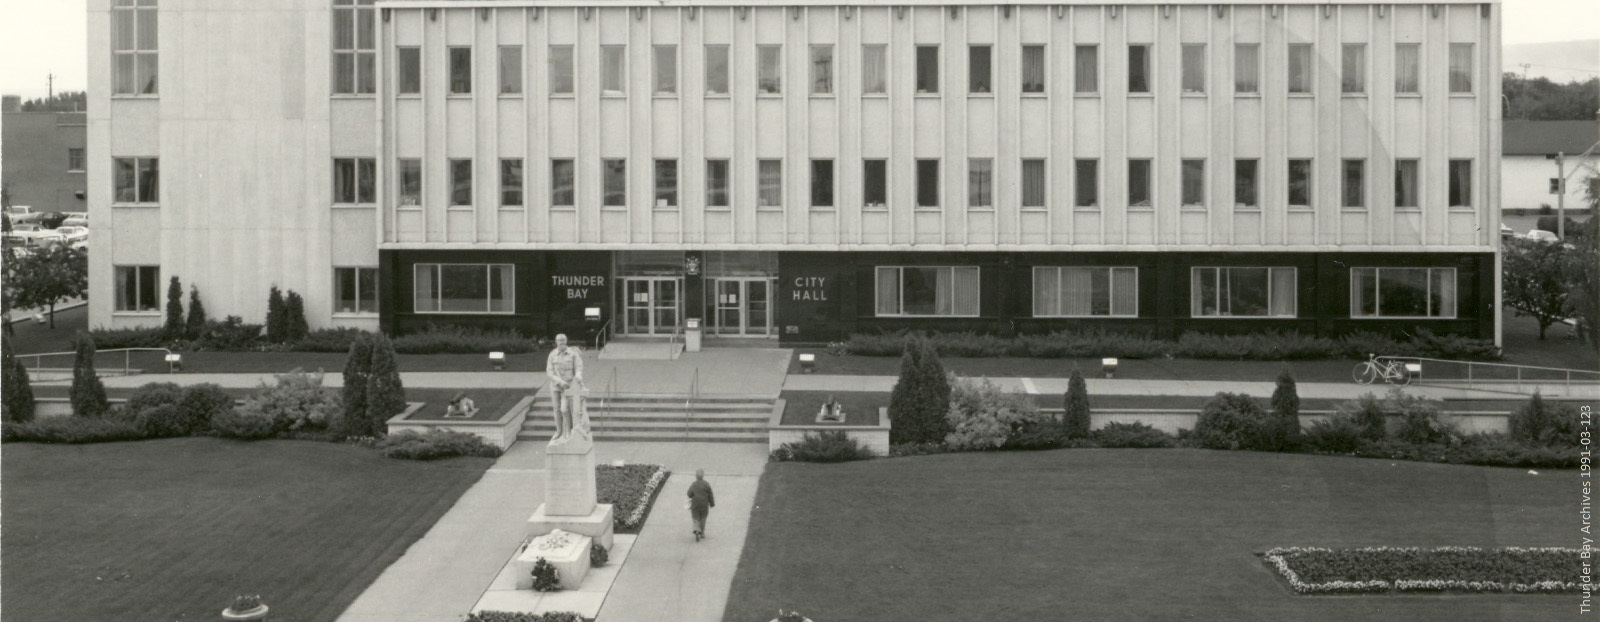 black and white photo of Thunder Bay City Hall in 1970s